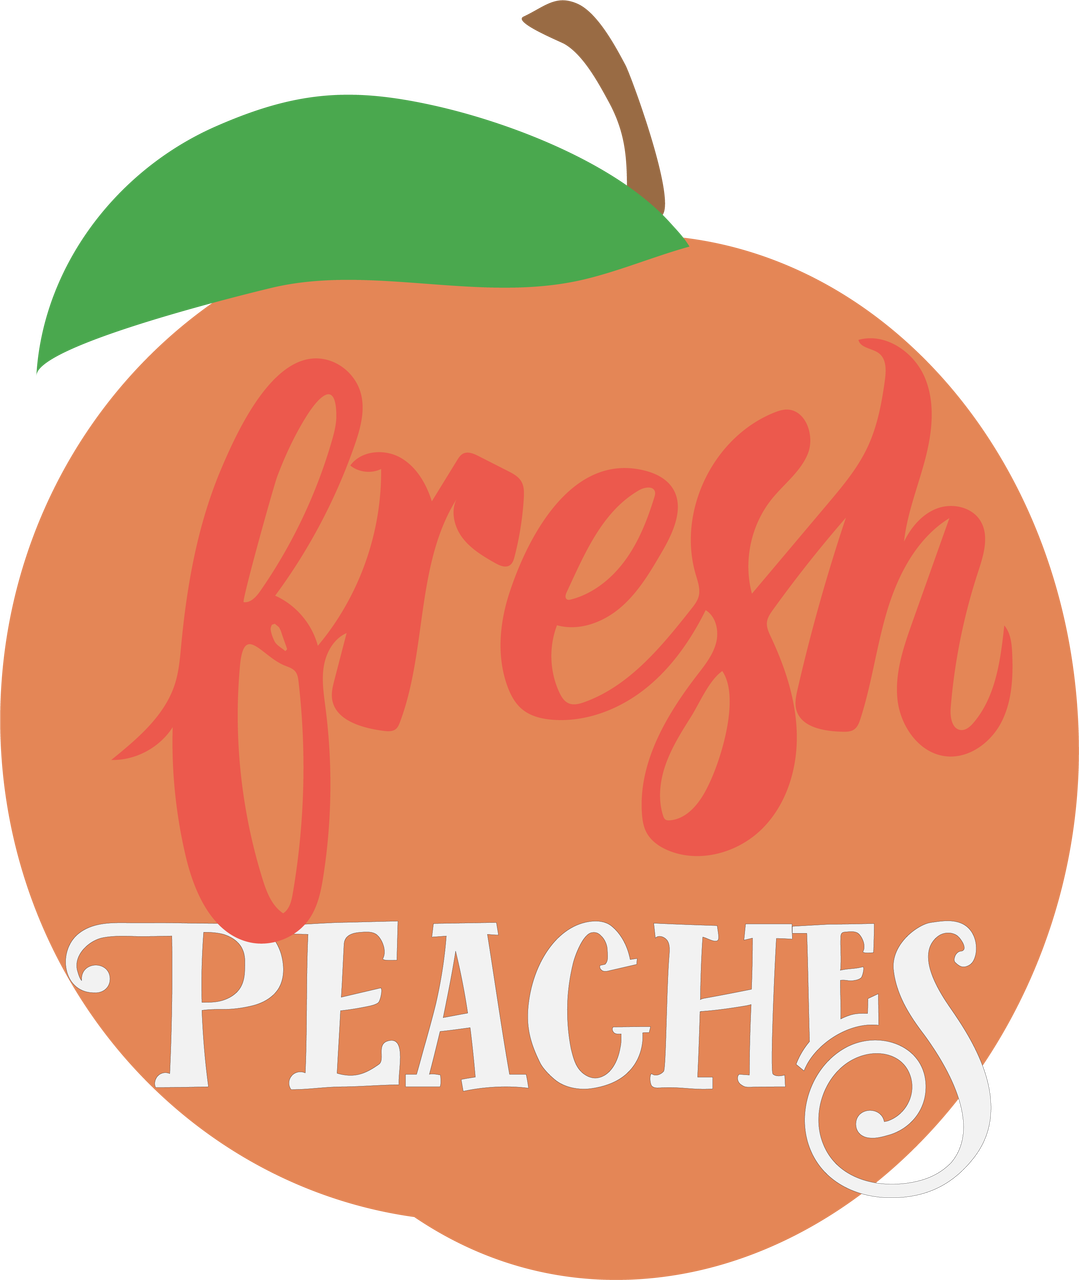 Peach svg logo. Fresh peaches cut file